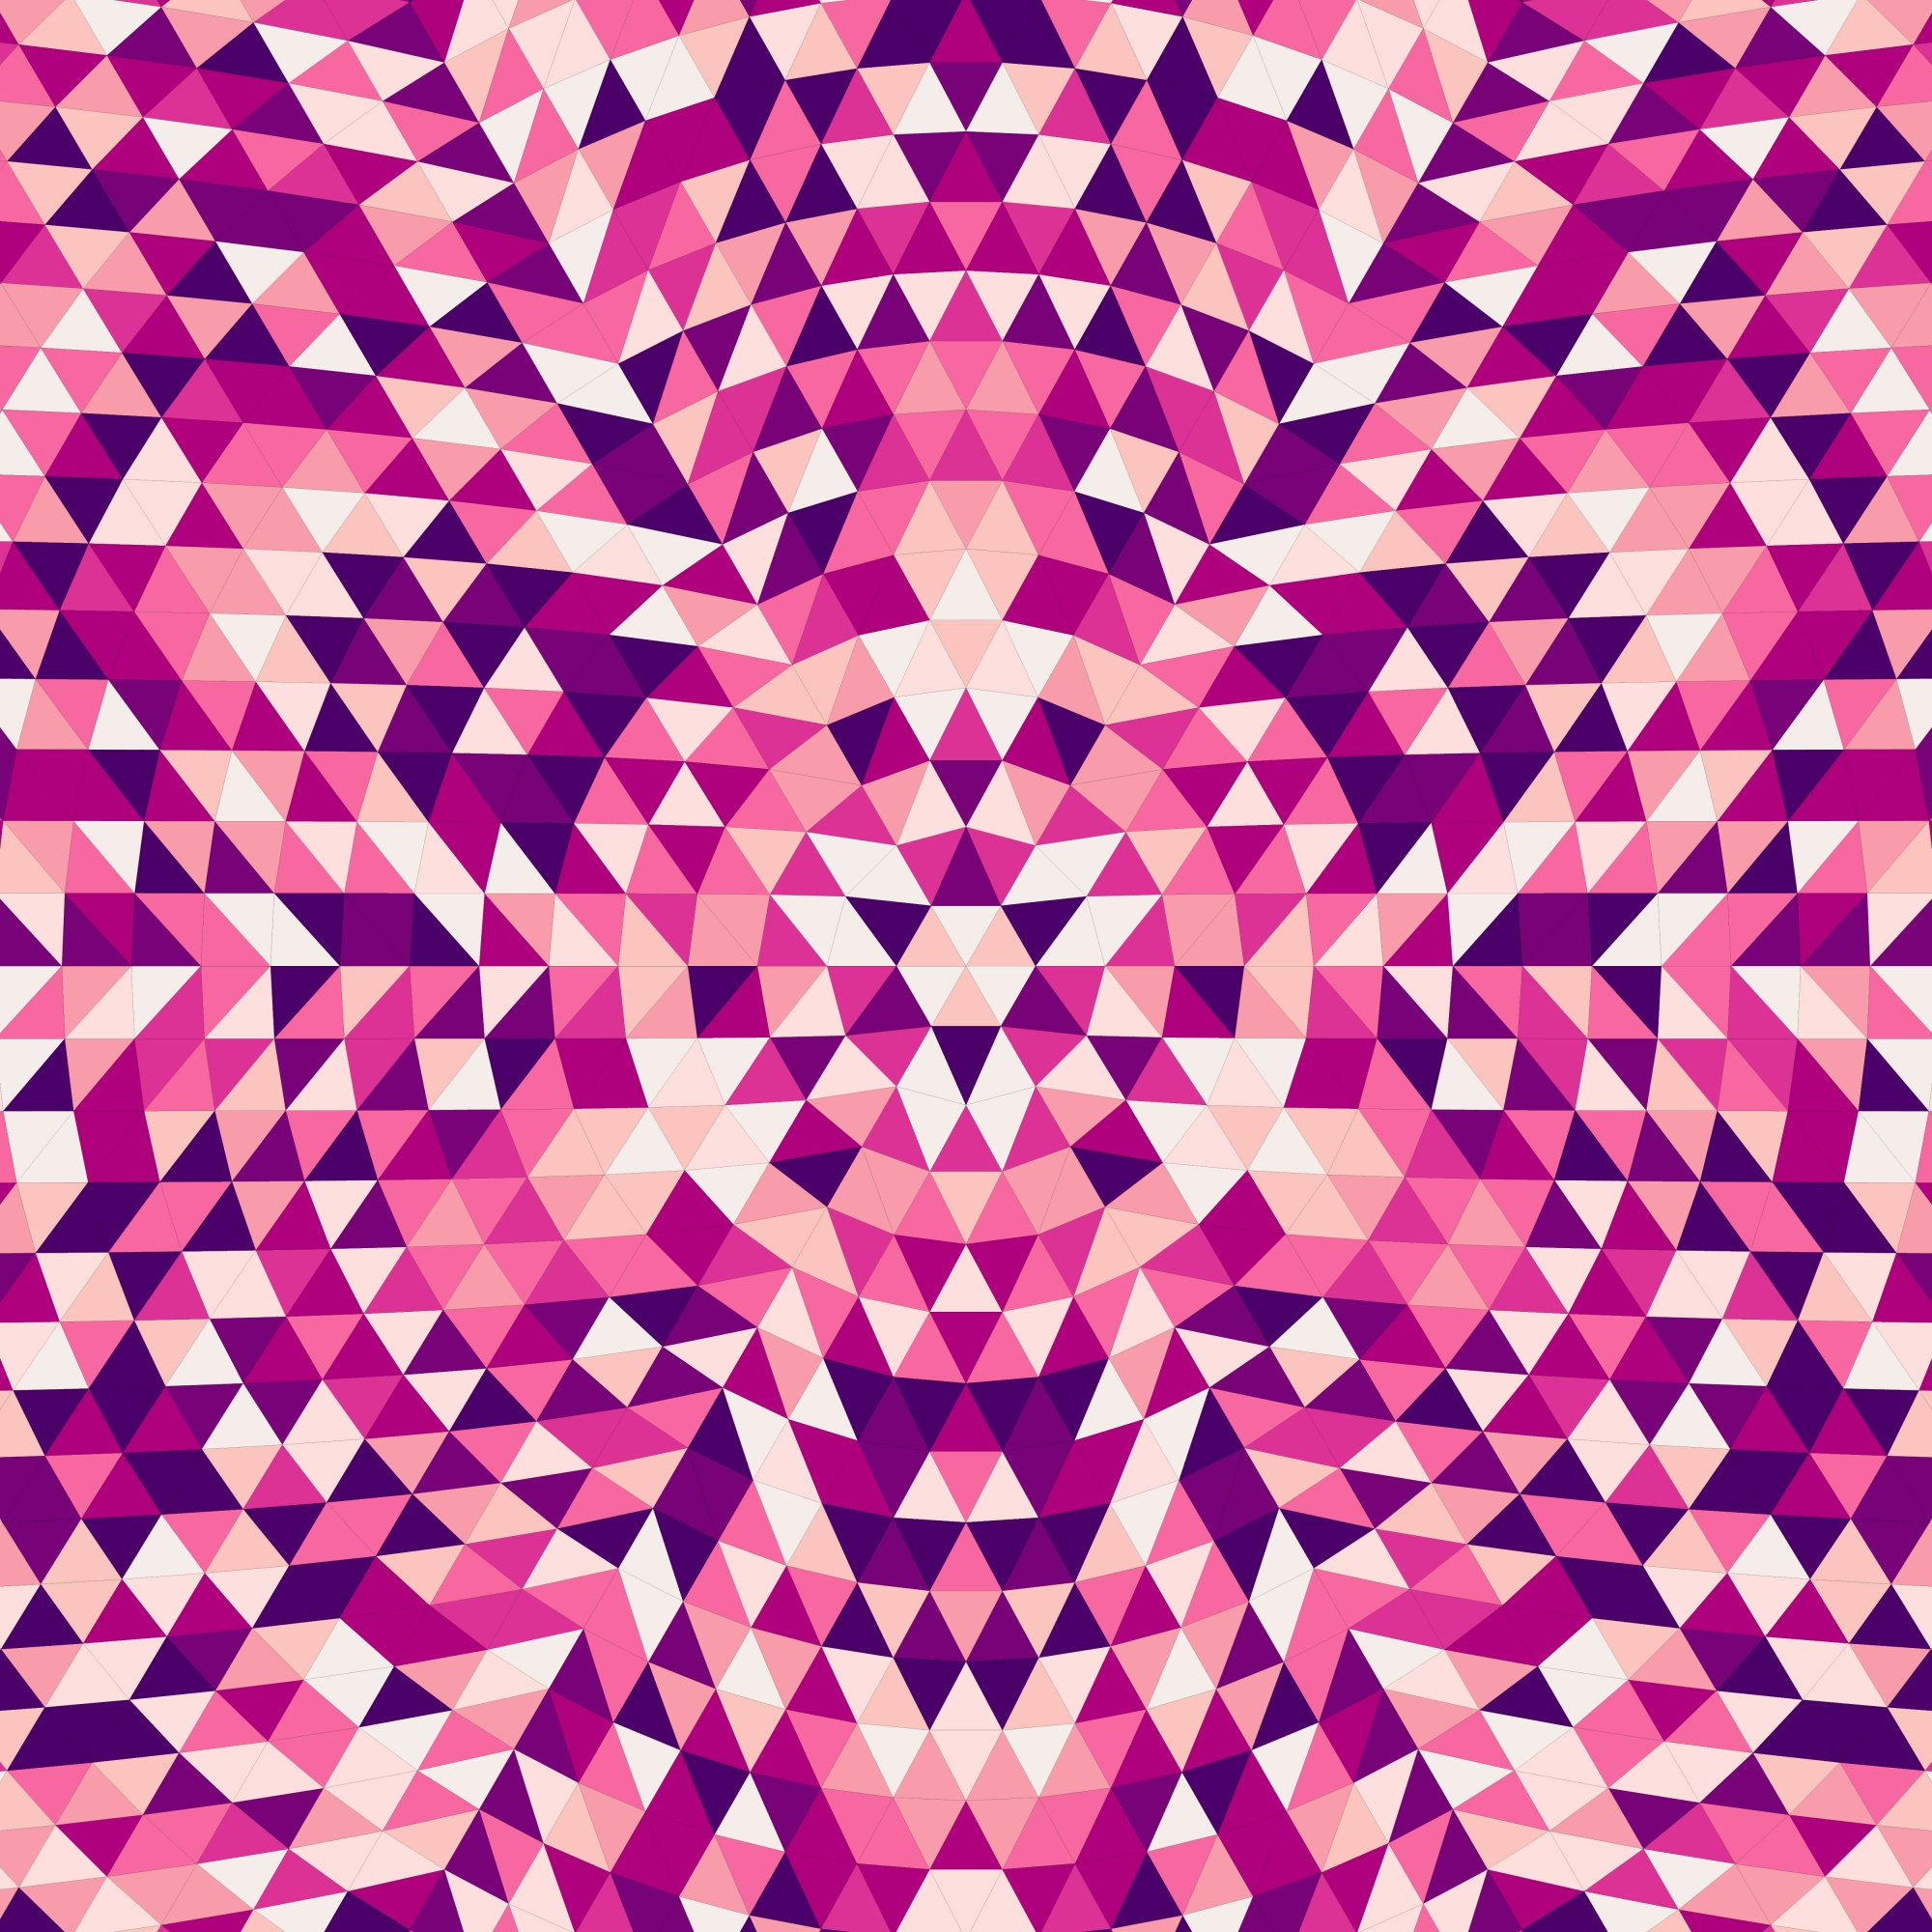 Round abstract geometrical triangle mandala background - symmetrical vector pattern design from colorful triangles